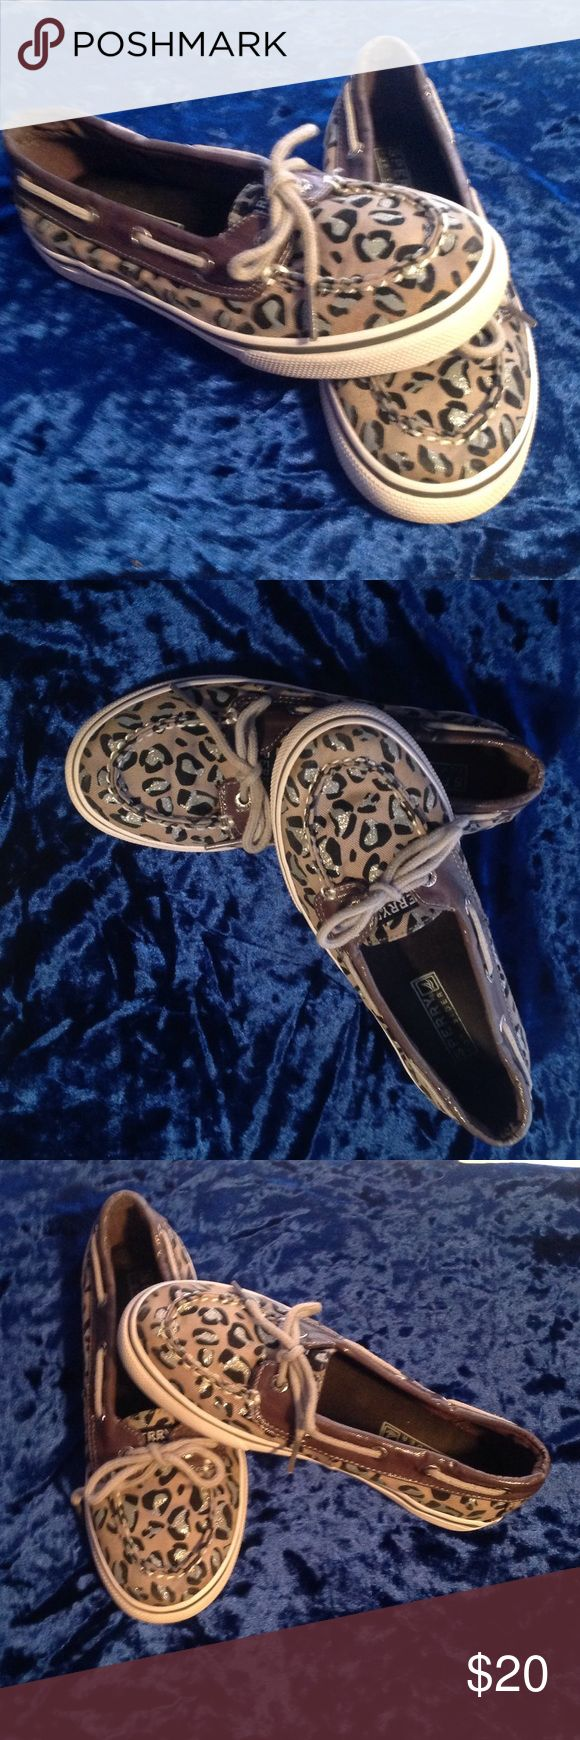 Girls Leopard SPERRYS These are in like new condition. With silver glitter leopard spots 😍 Sperry Top-Sider Shoes